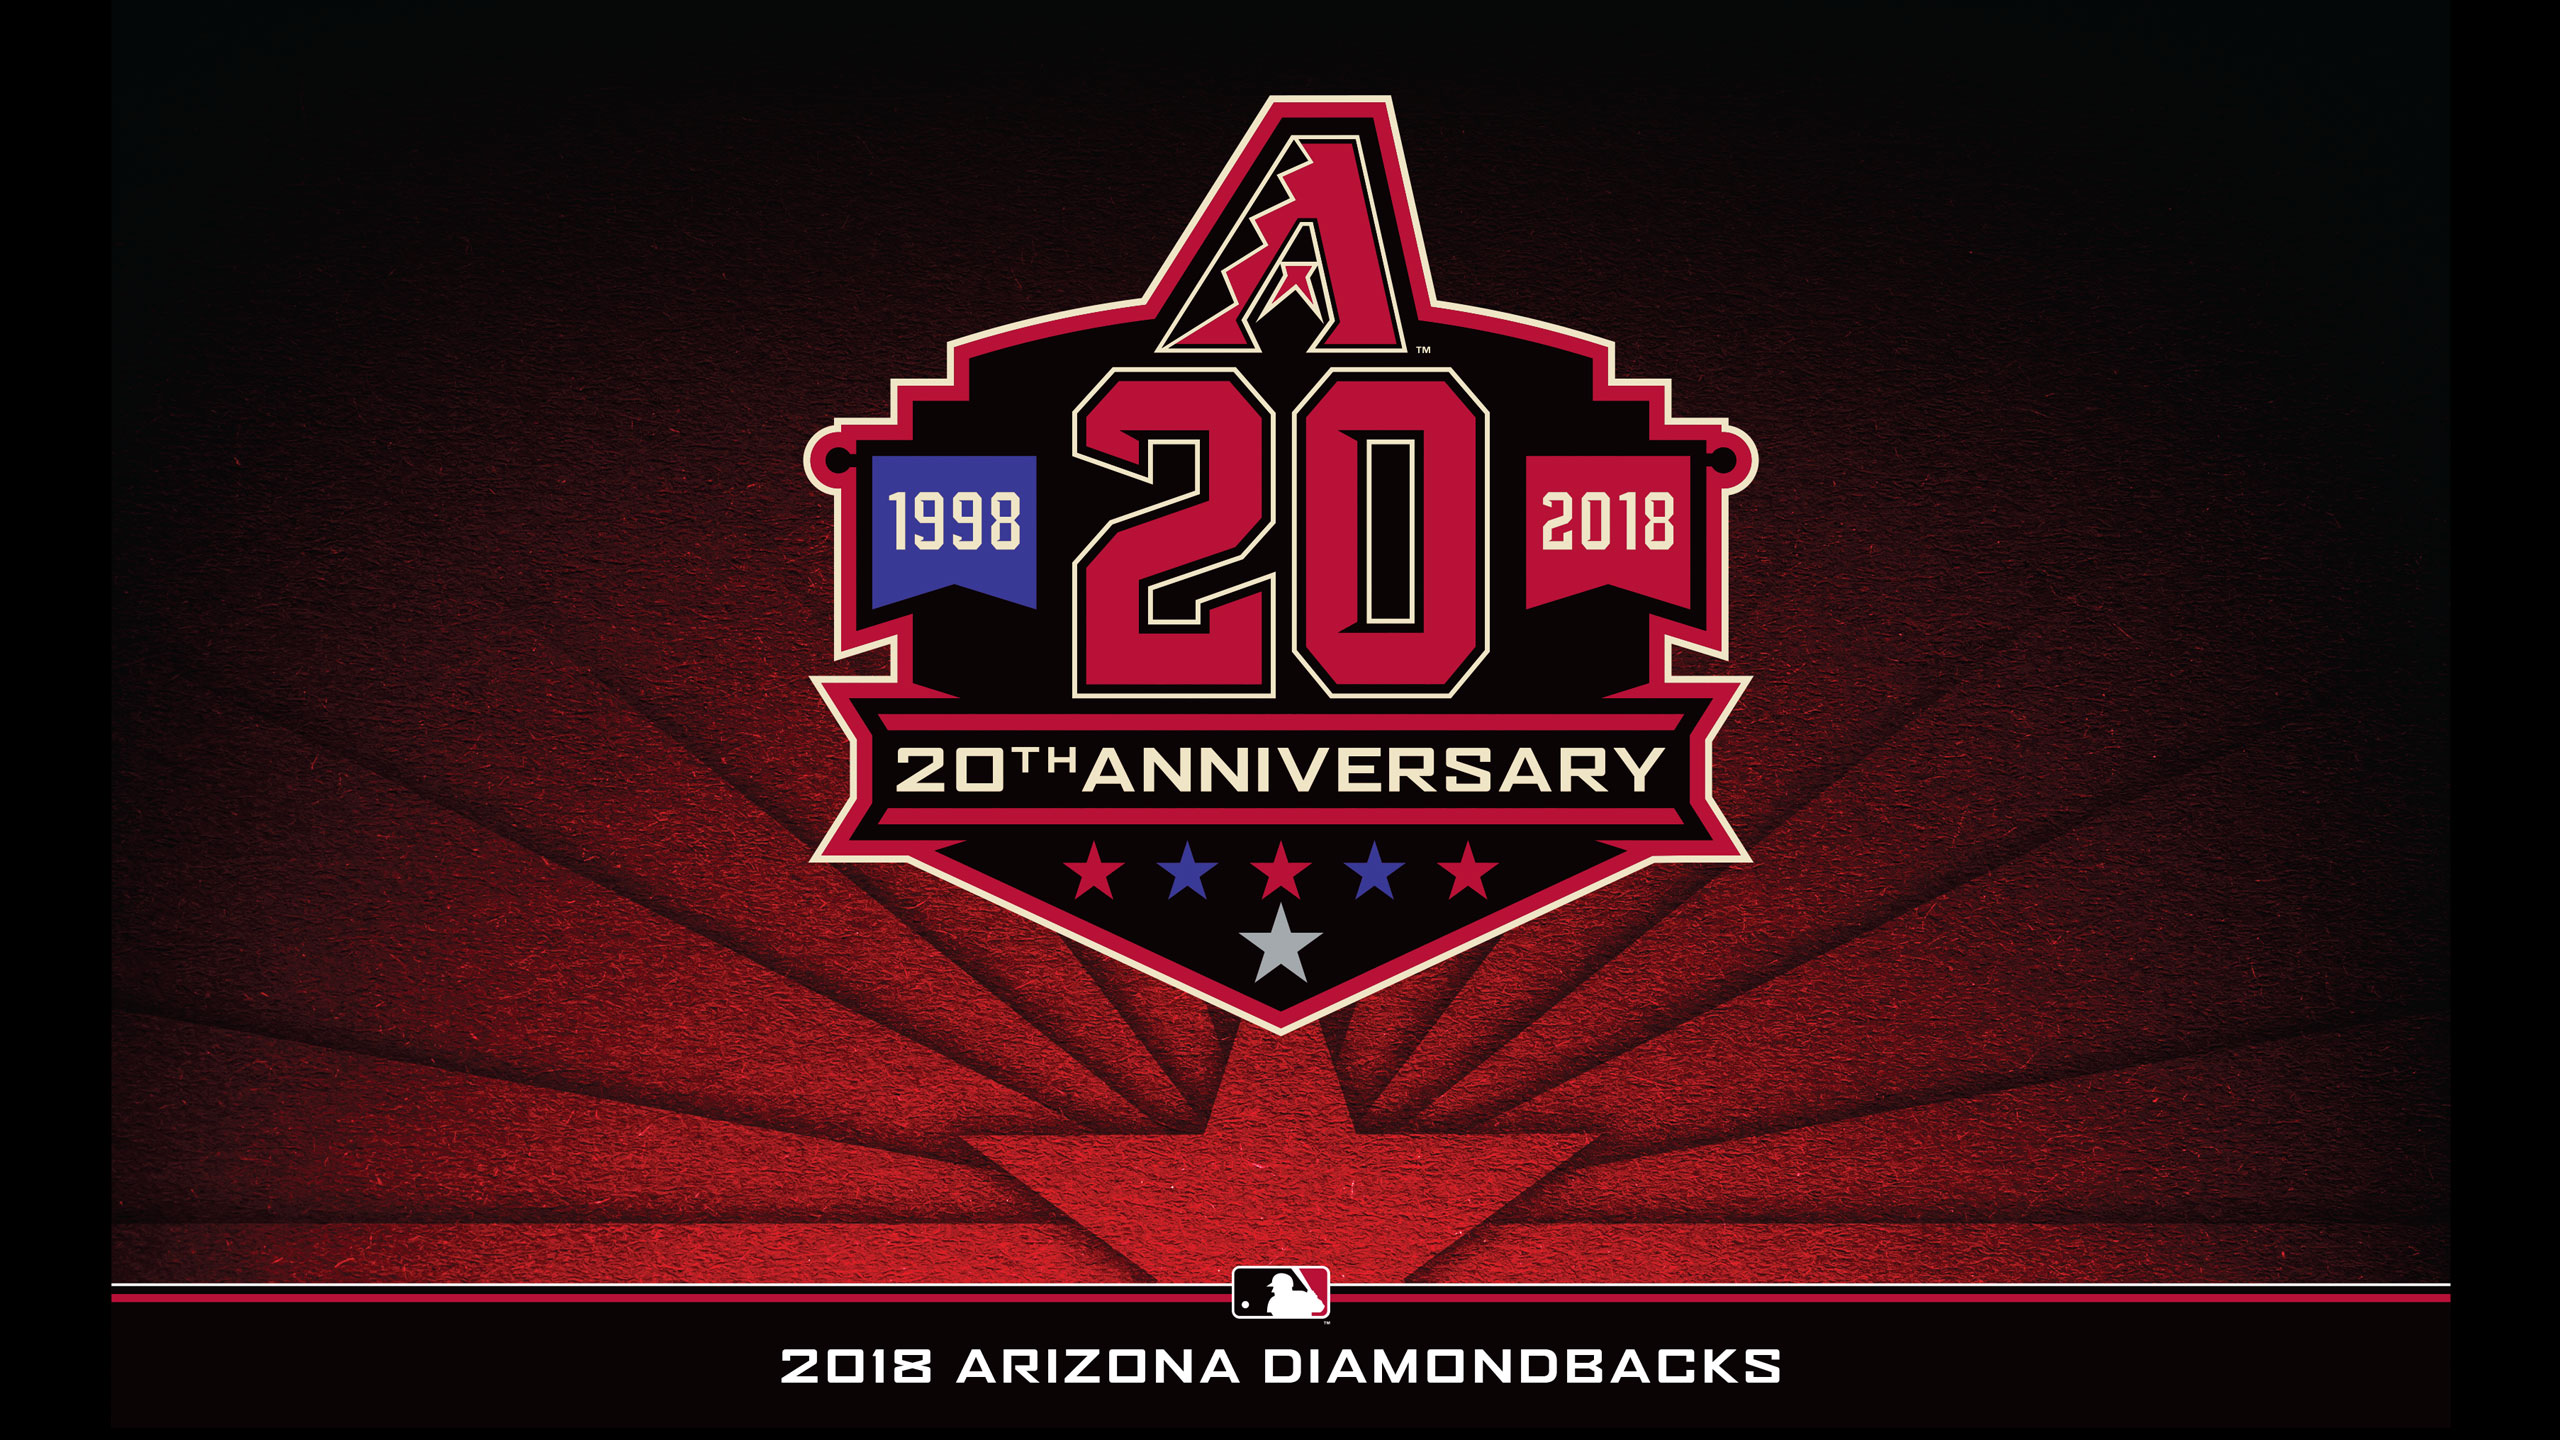 2560x1440 - Arizona Diamondbacks Wallpapers 1